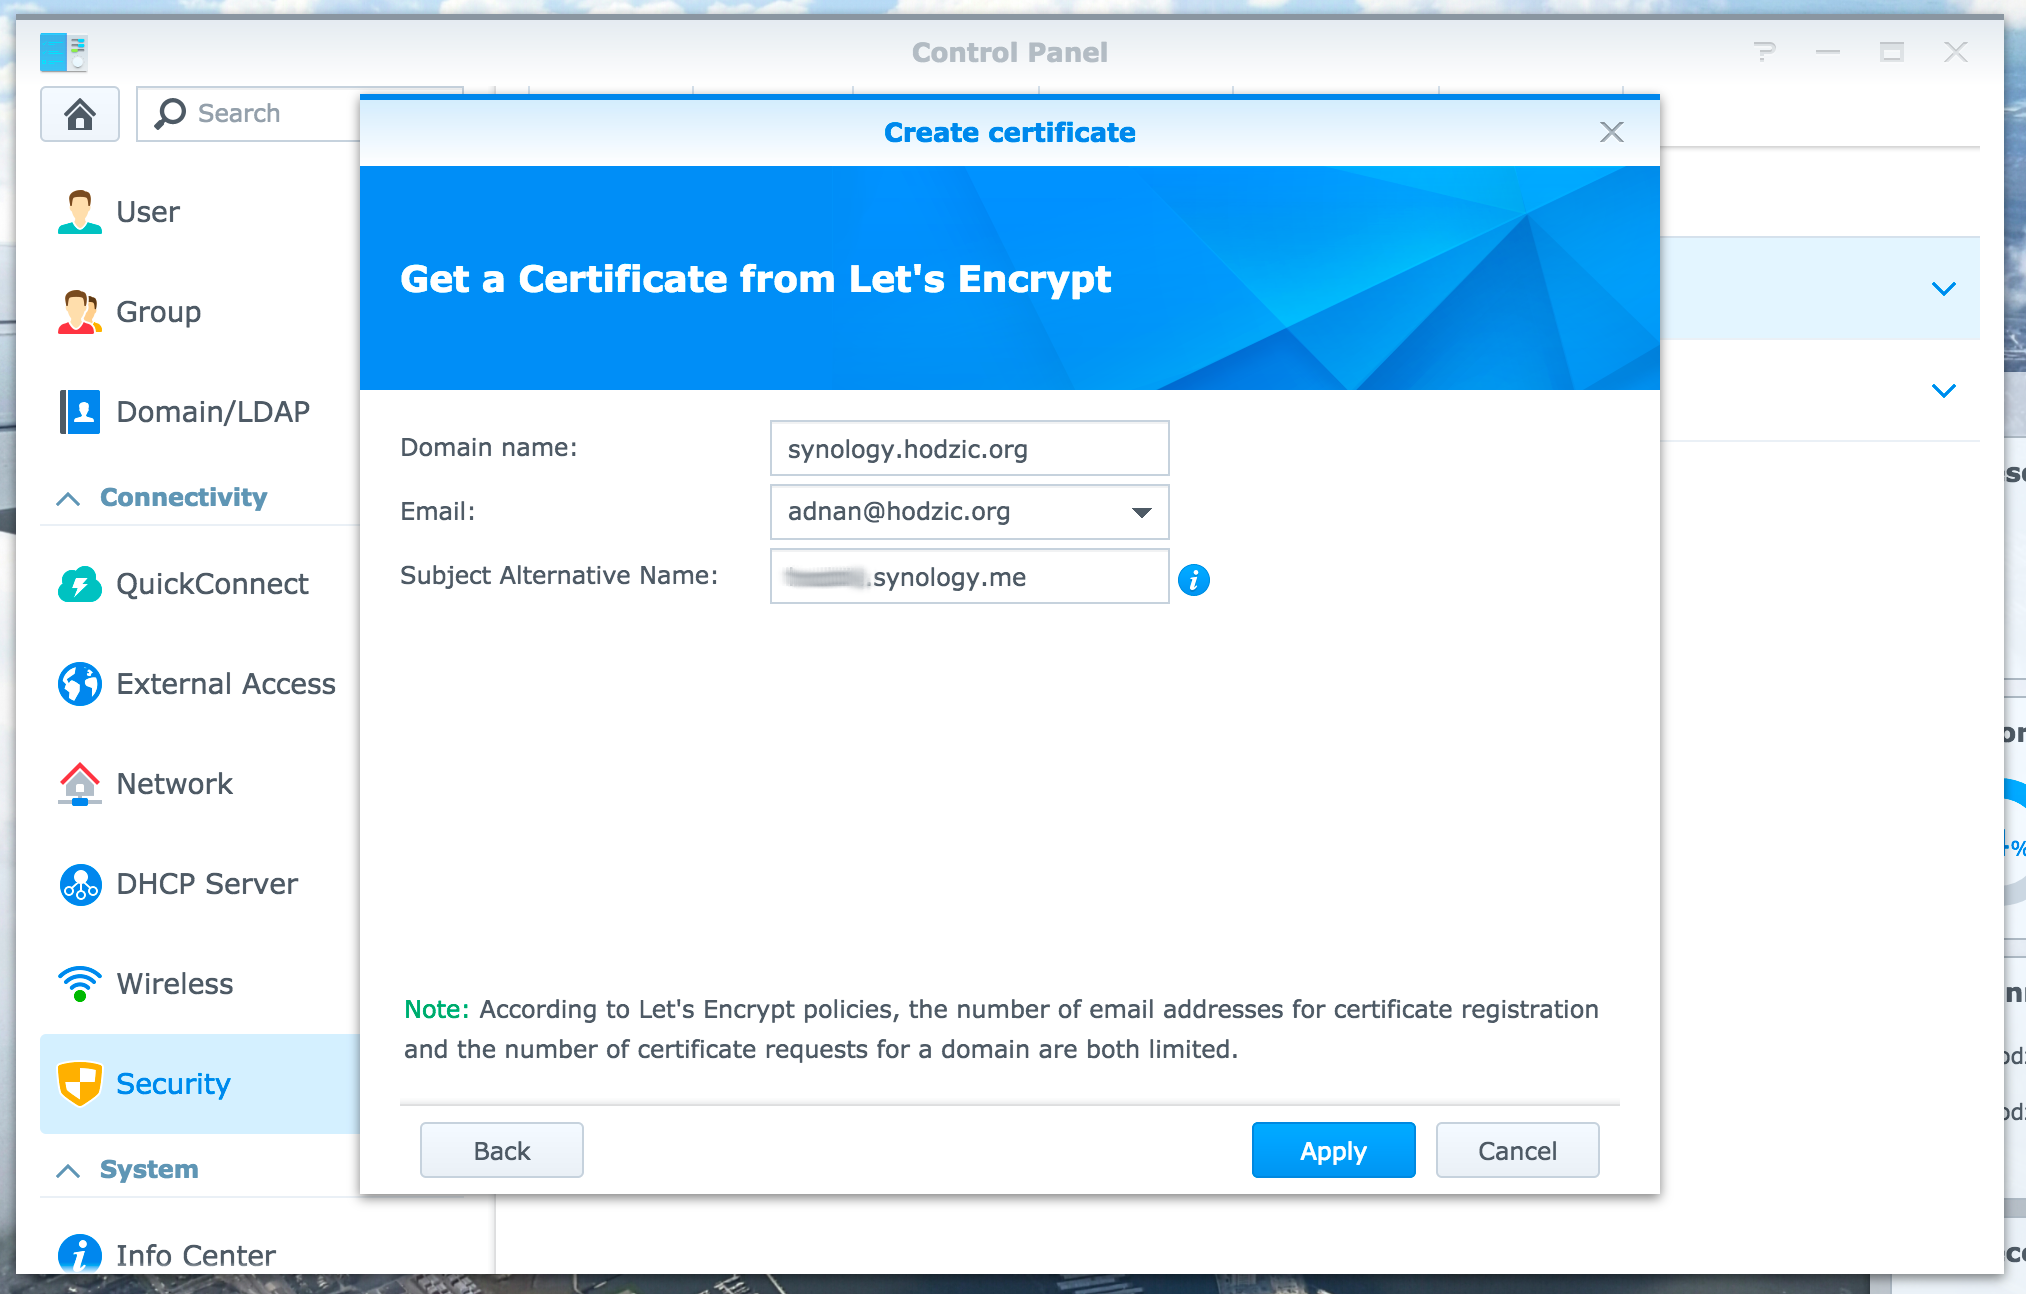 Secure (HTTPS) public access to Synology NAS using Let's Encrypt